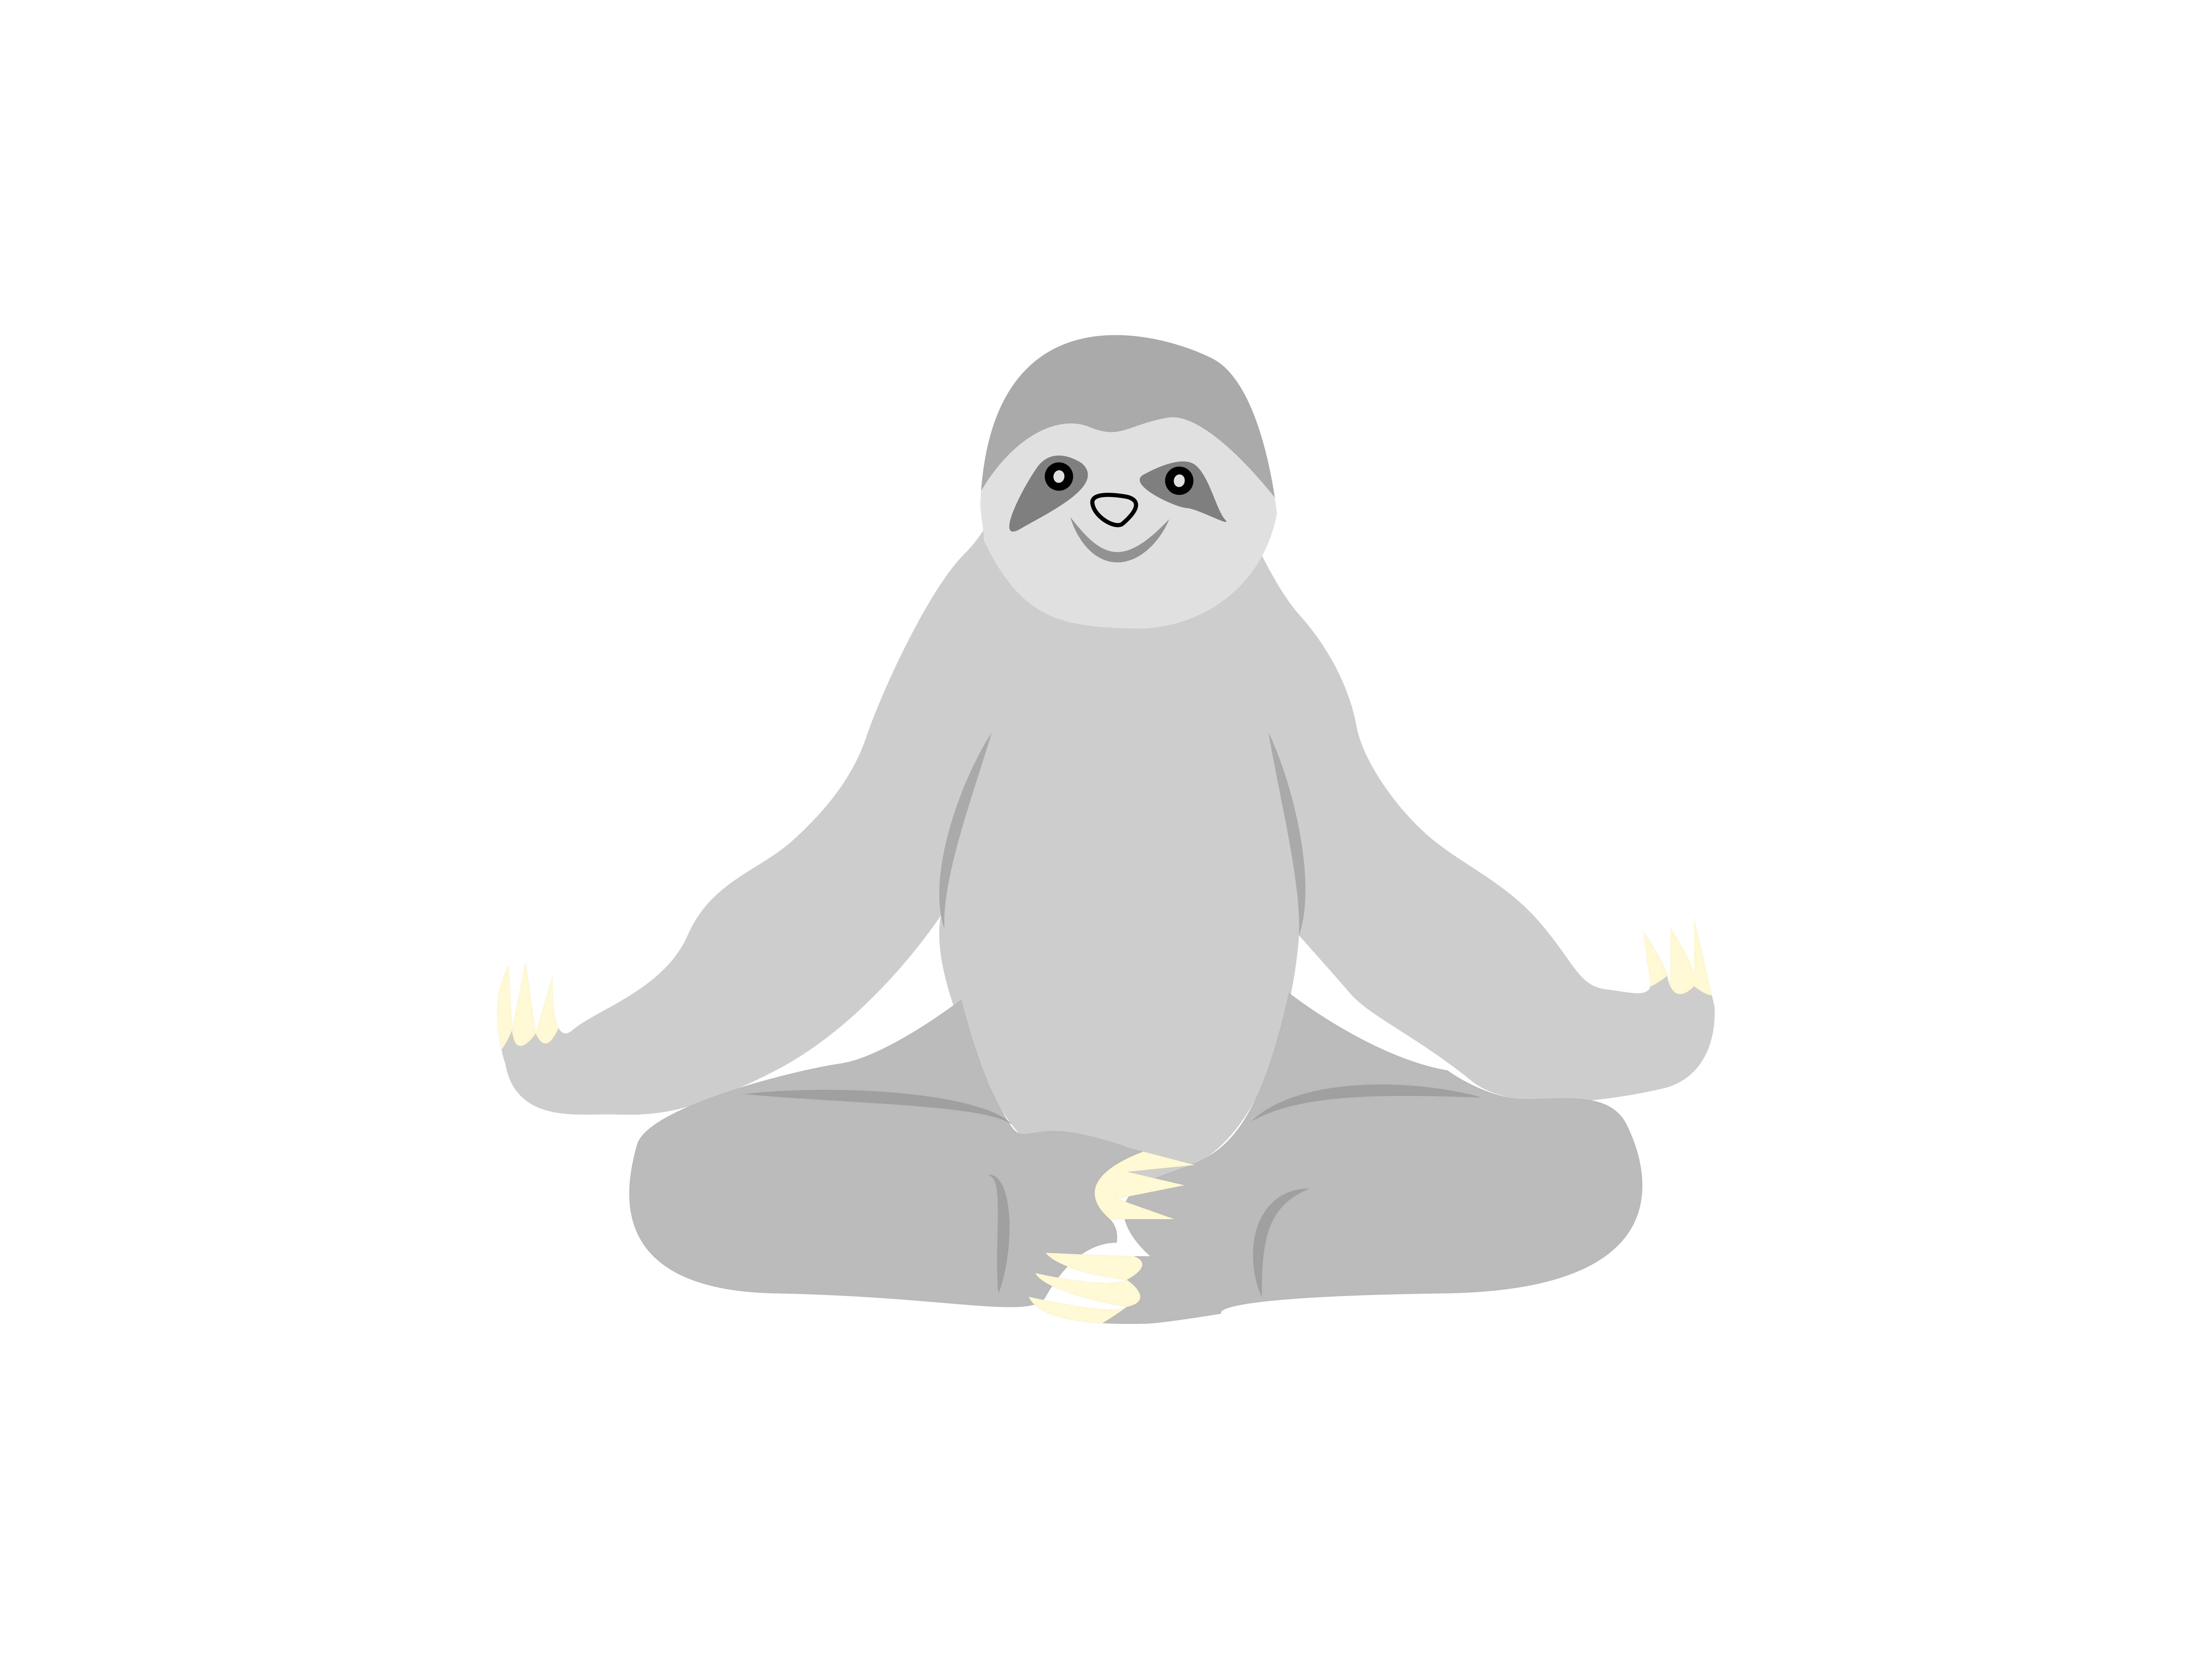 Download Free Sloth Sitting Animal Graphic By Archshape Creative Fabrica for Cricut Explore, Silhouette and other cutting machines.